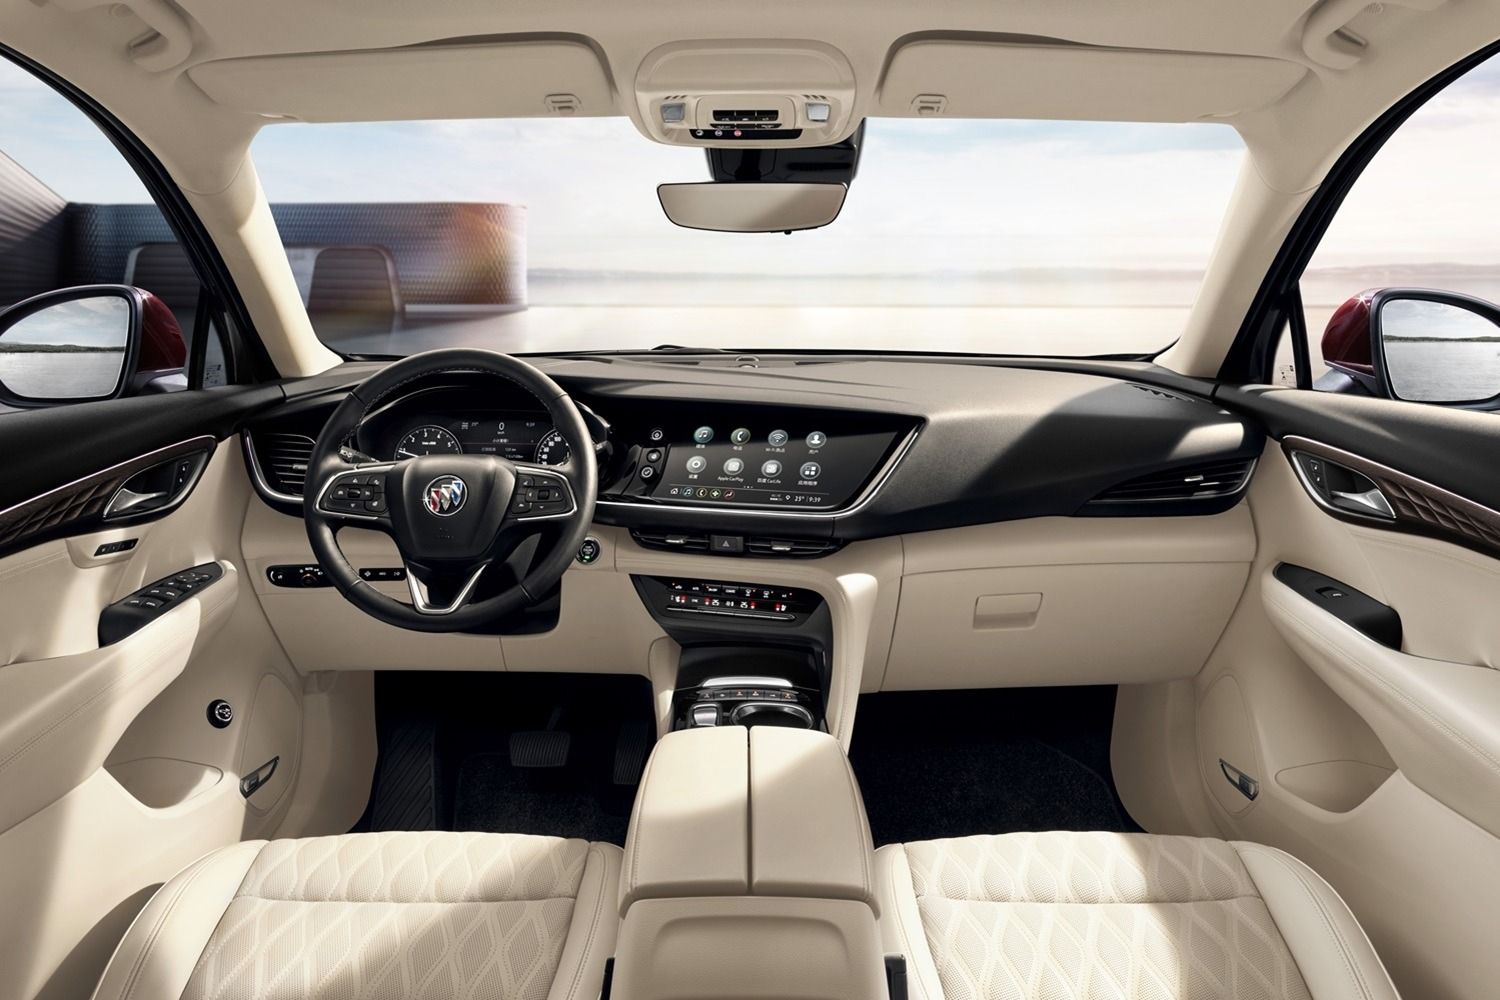 2021 Buick Envision Interior Revealed In Brand New Photos New 2021 Buick Lucerne Interior, Problems, Review